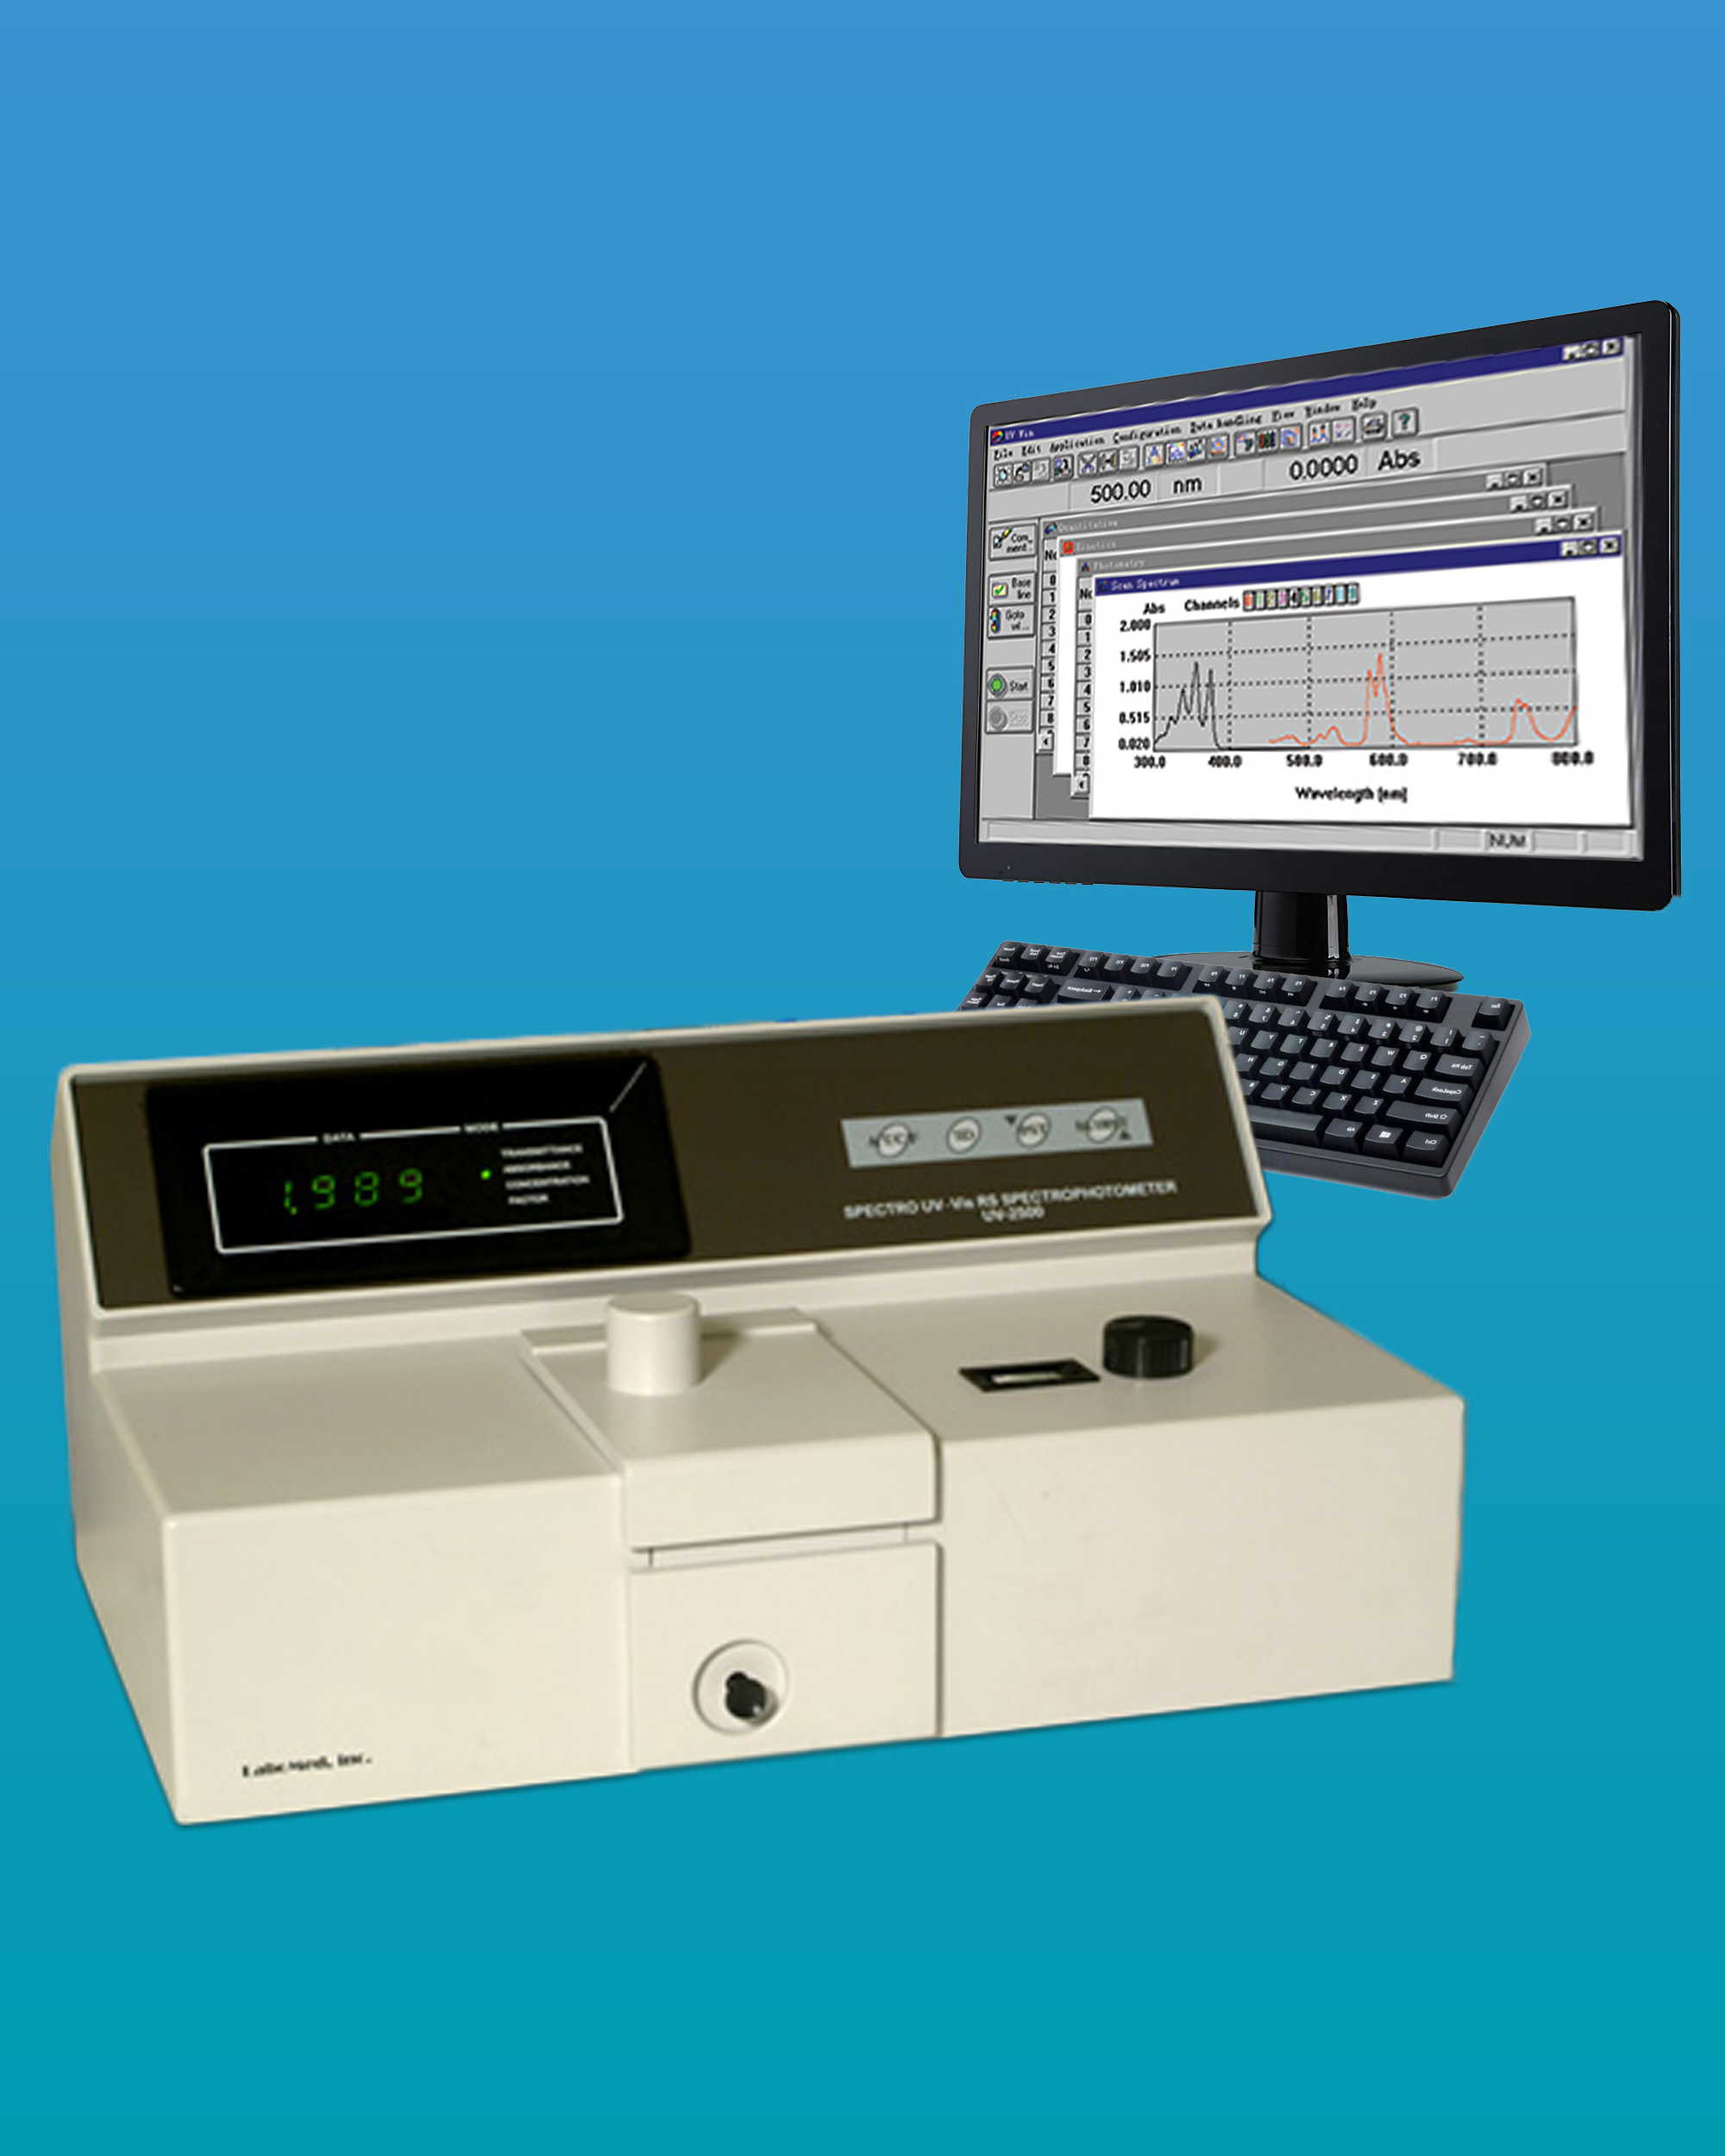 [UV-2502] Spectro UV-Vis Spectrophotometer RS